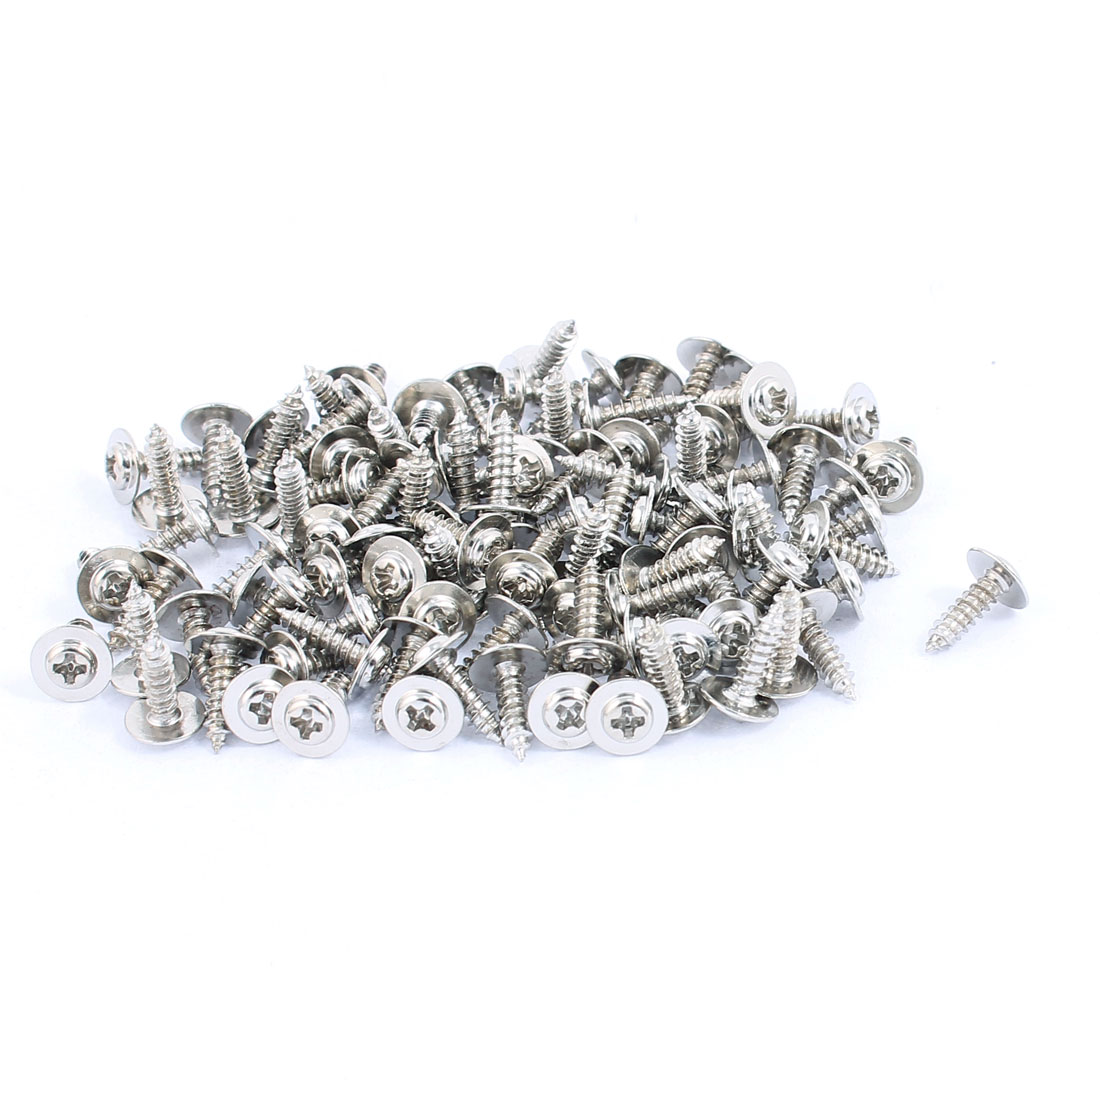 100pcs 2.3x8mm Stainless Steel Self Tapping Screw Phillips Head With Washer